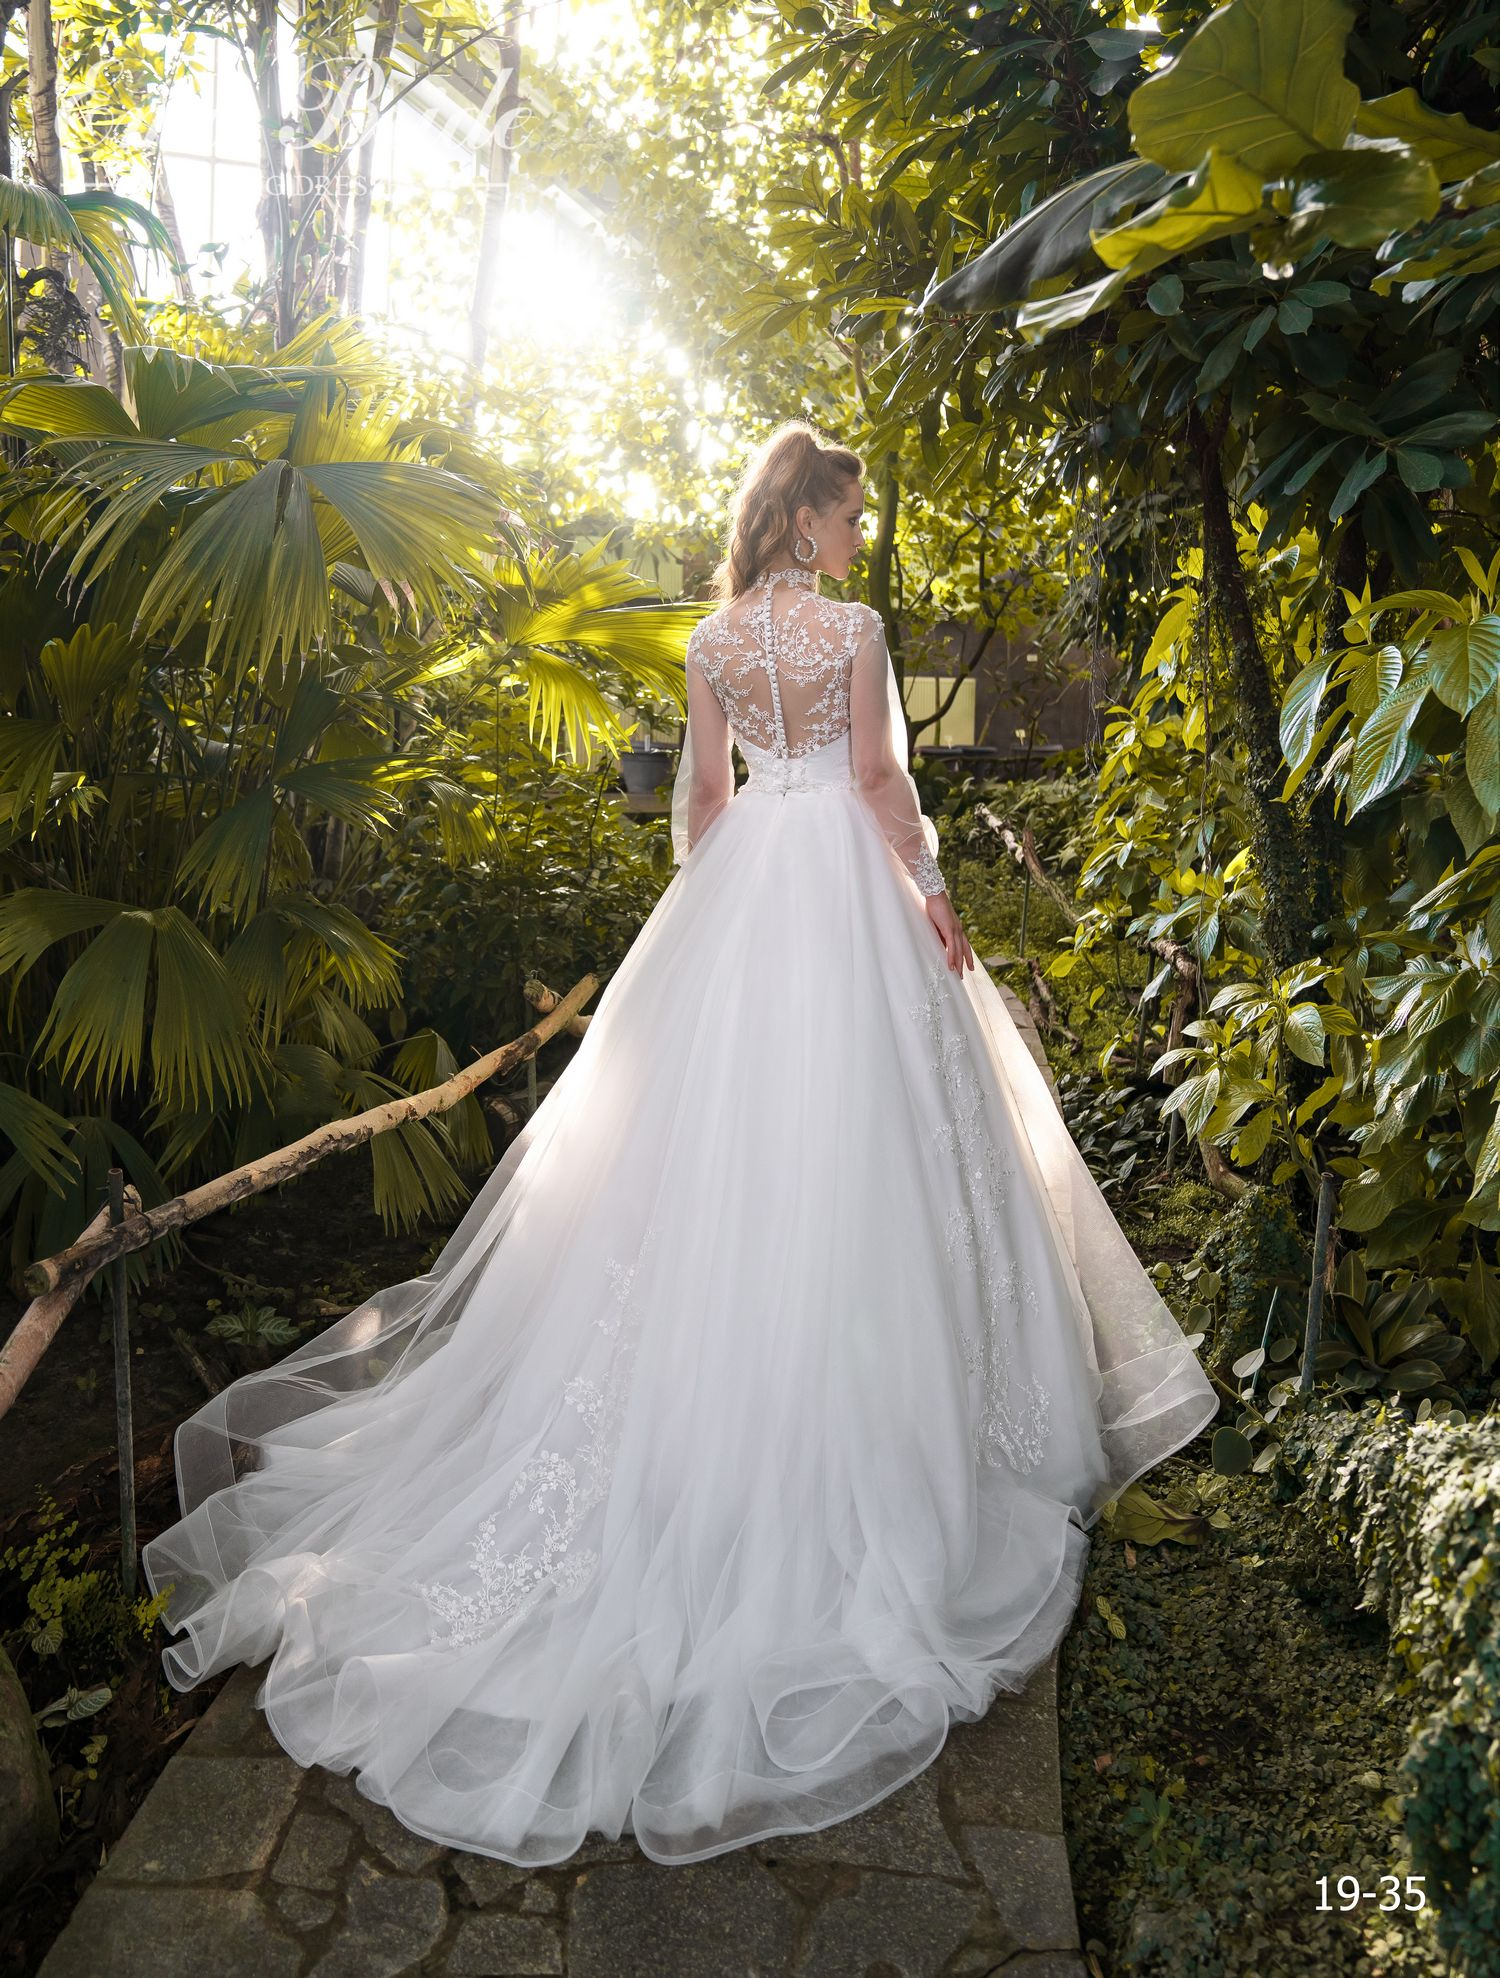 Model 19-35 | Buy wedding dresses wholesale by the ukrainian manufacturer Emabride-3